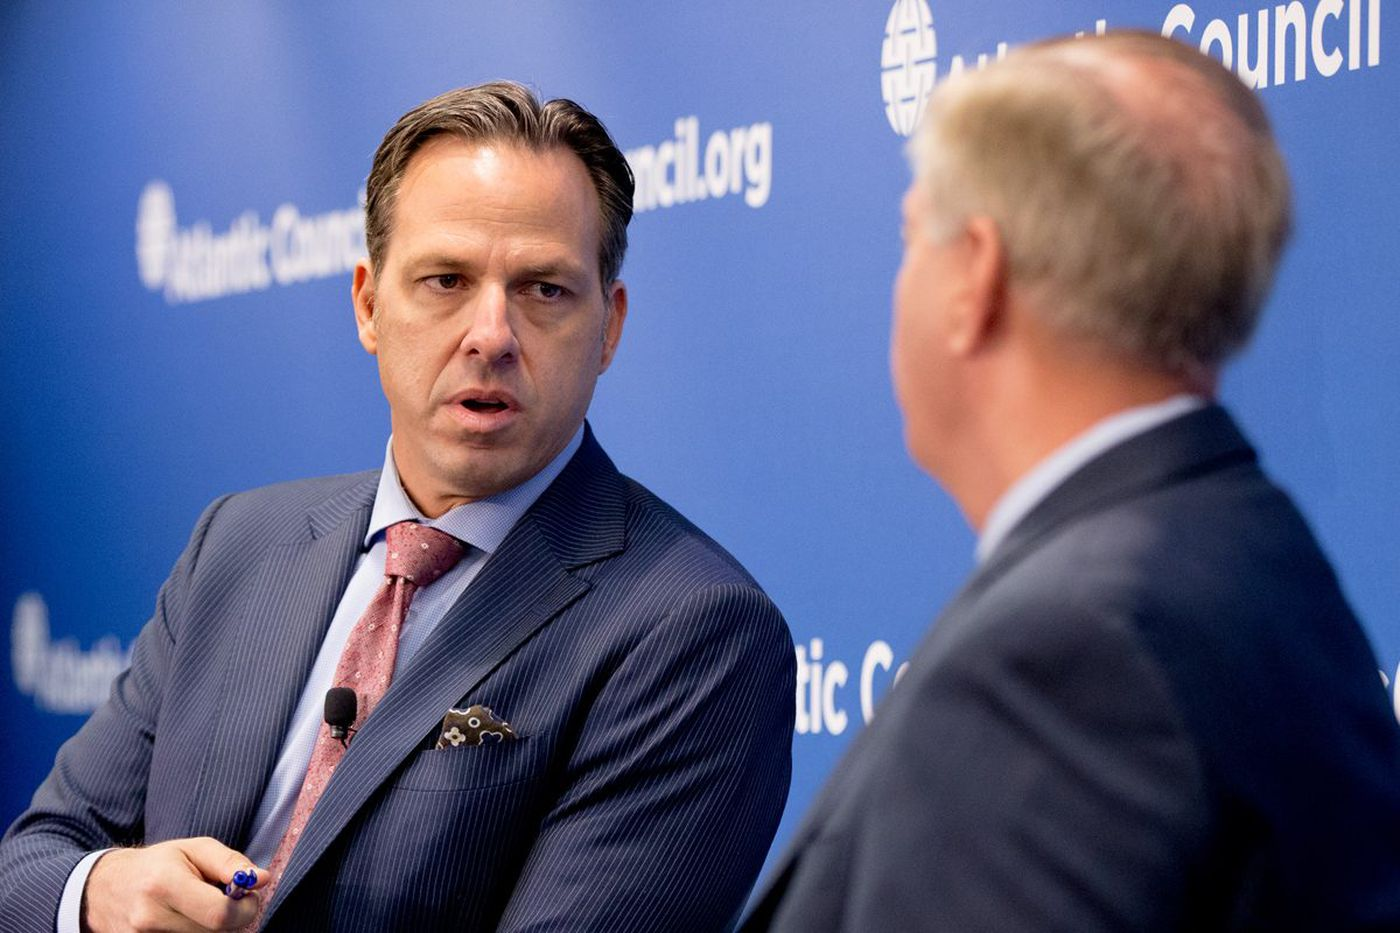 Breitbart goes after CNN host Jake Tapper's Philly roots